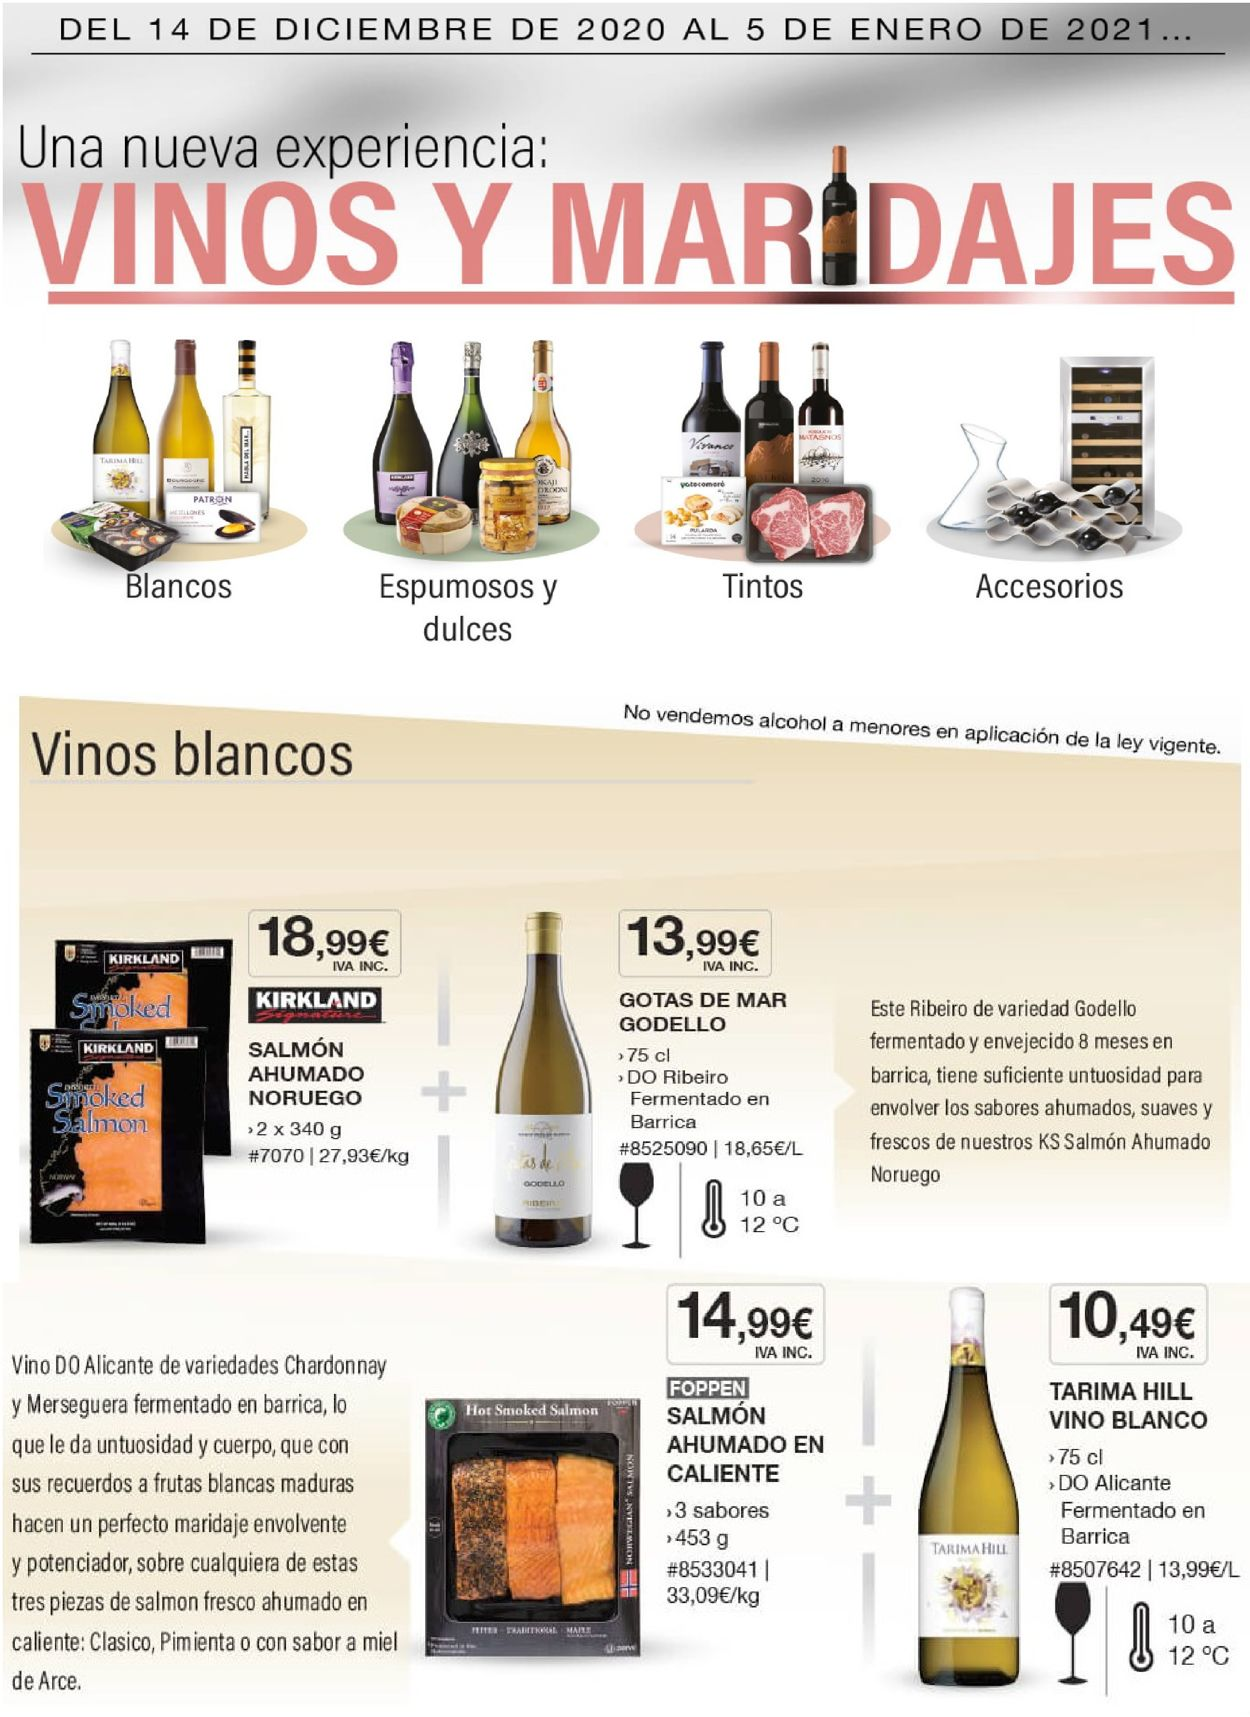 Costco Vinos 2020 Folleto - 14.12-05.01.2021